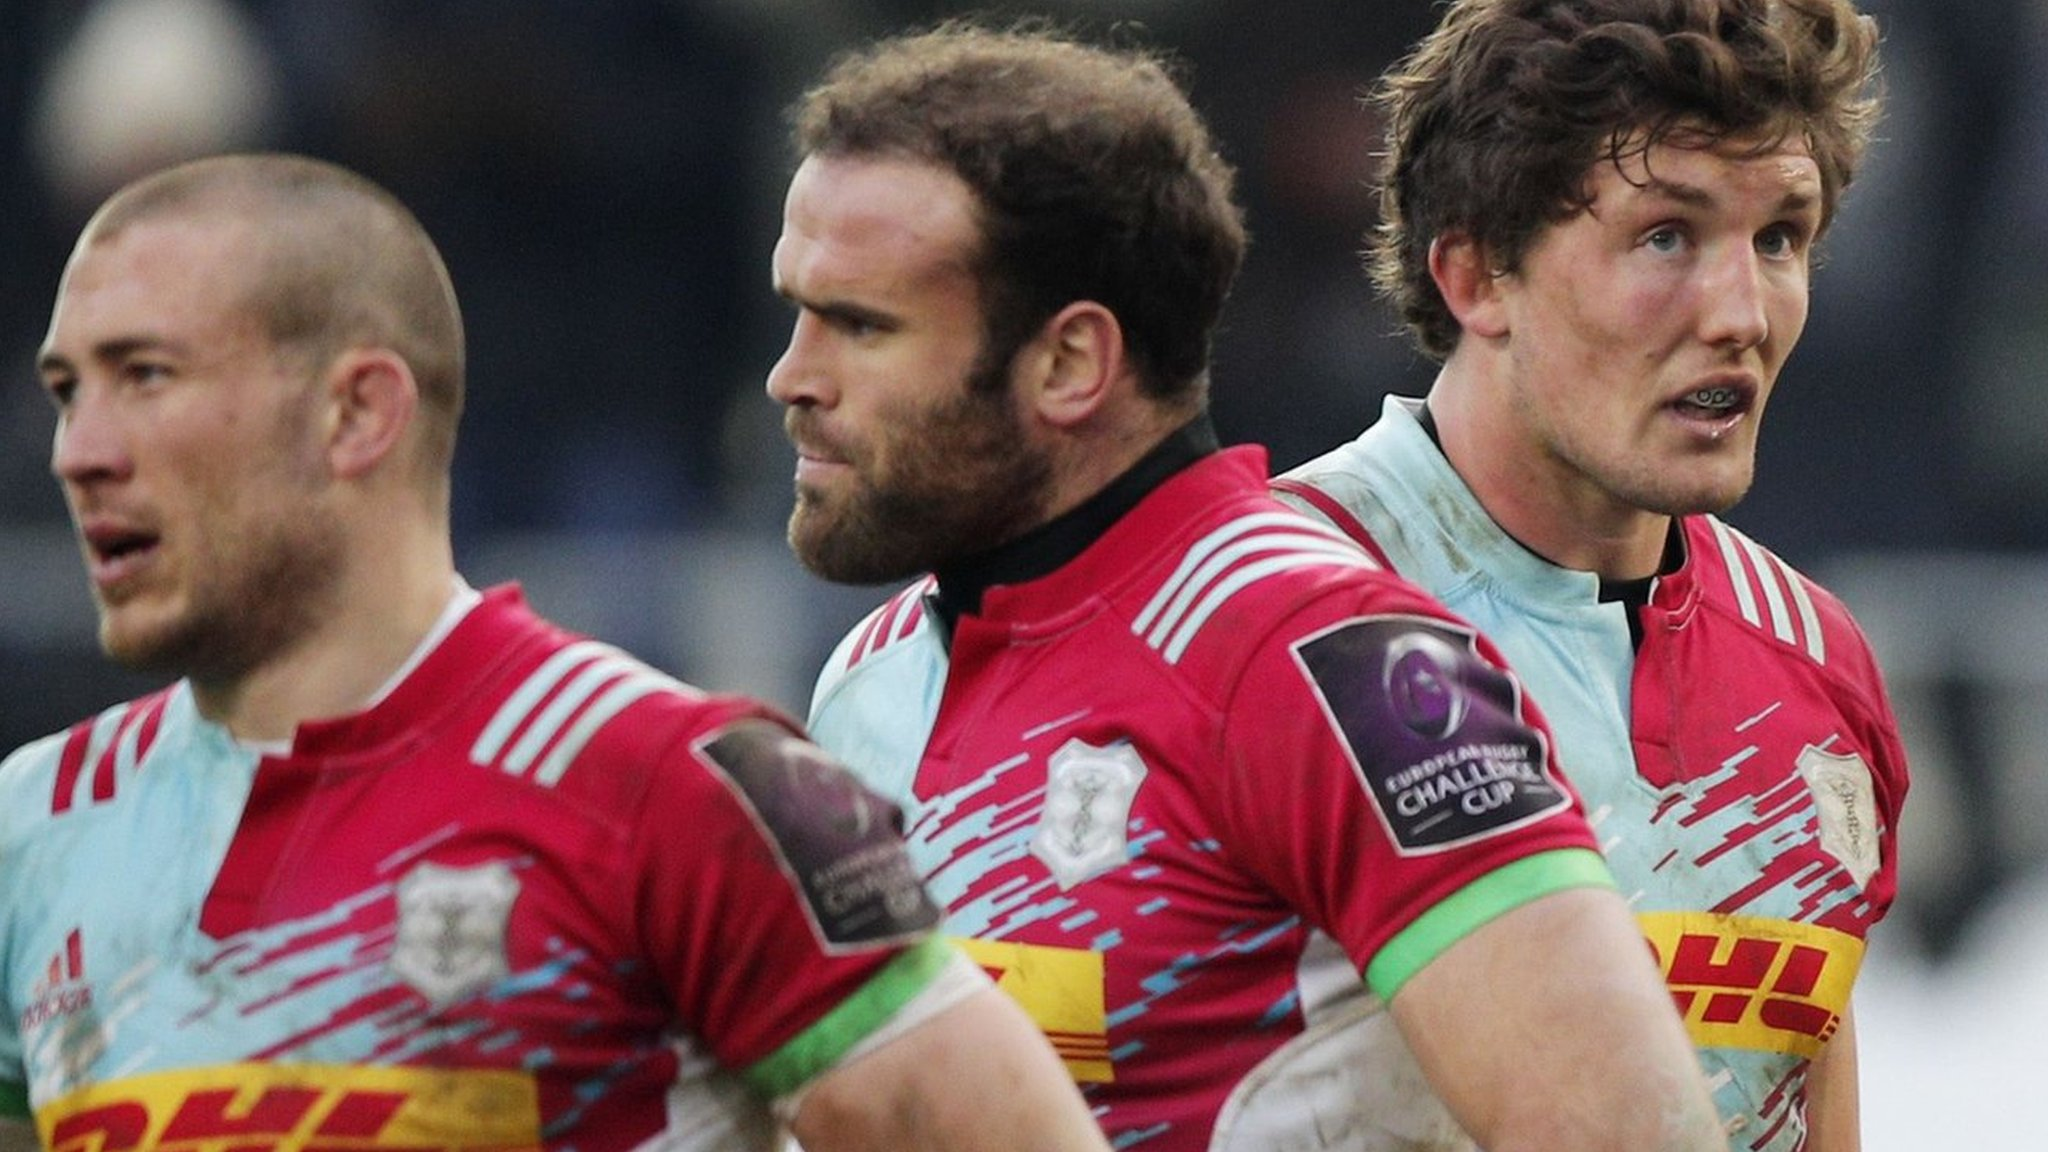 Harlequins knocked out of Challenge Cup